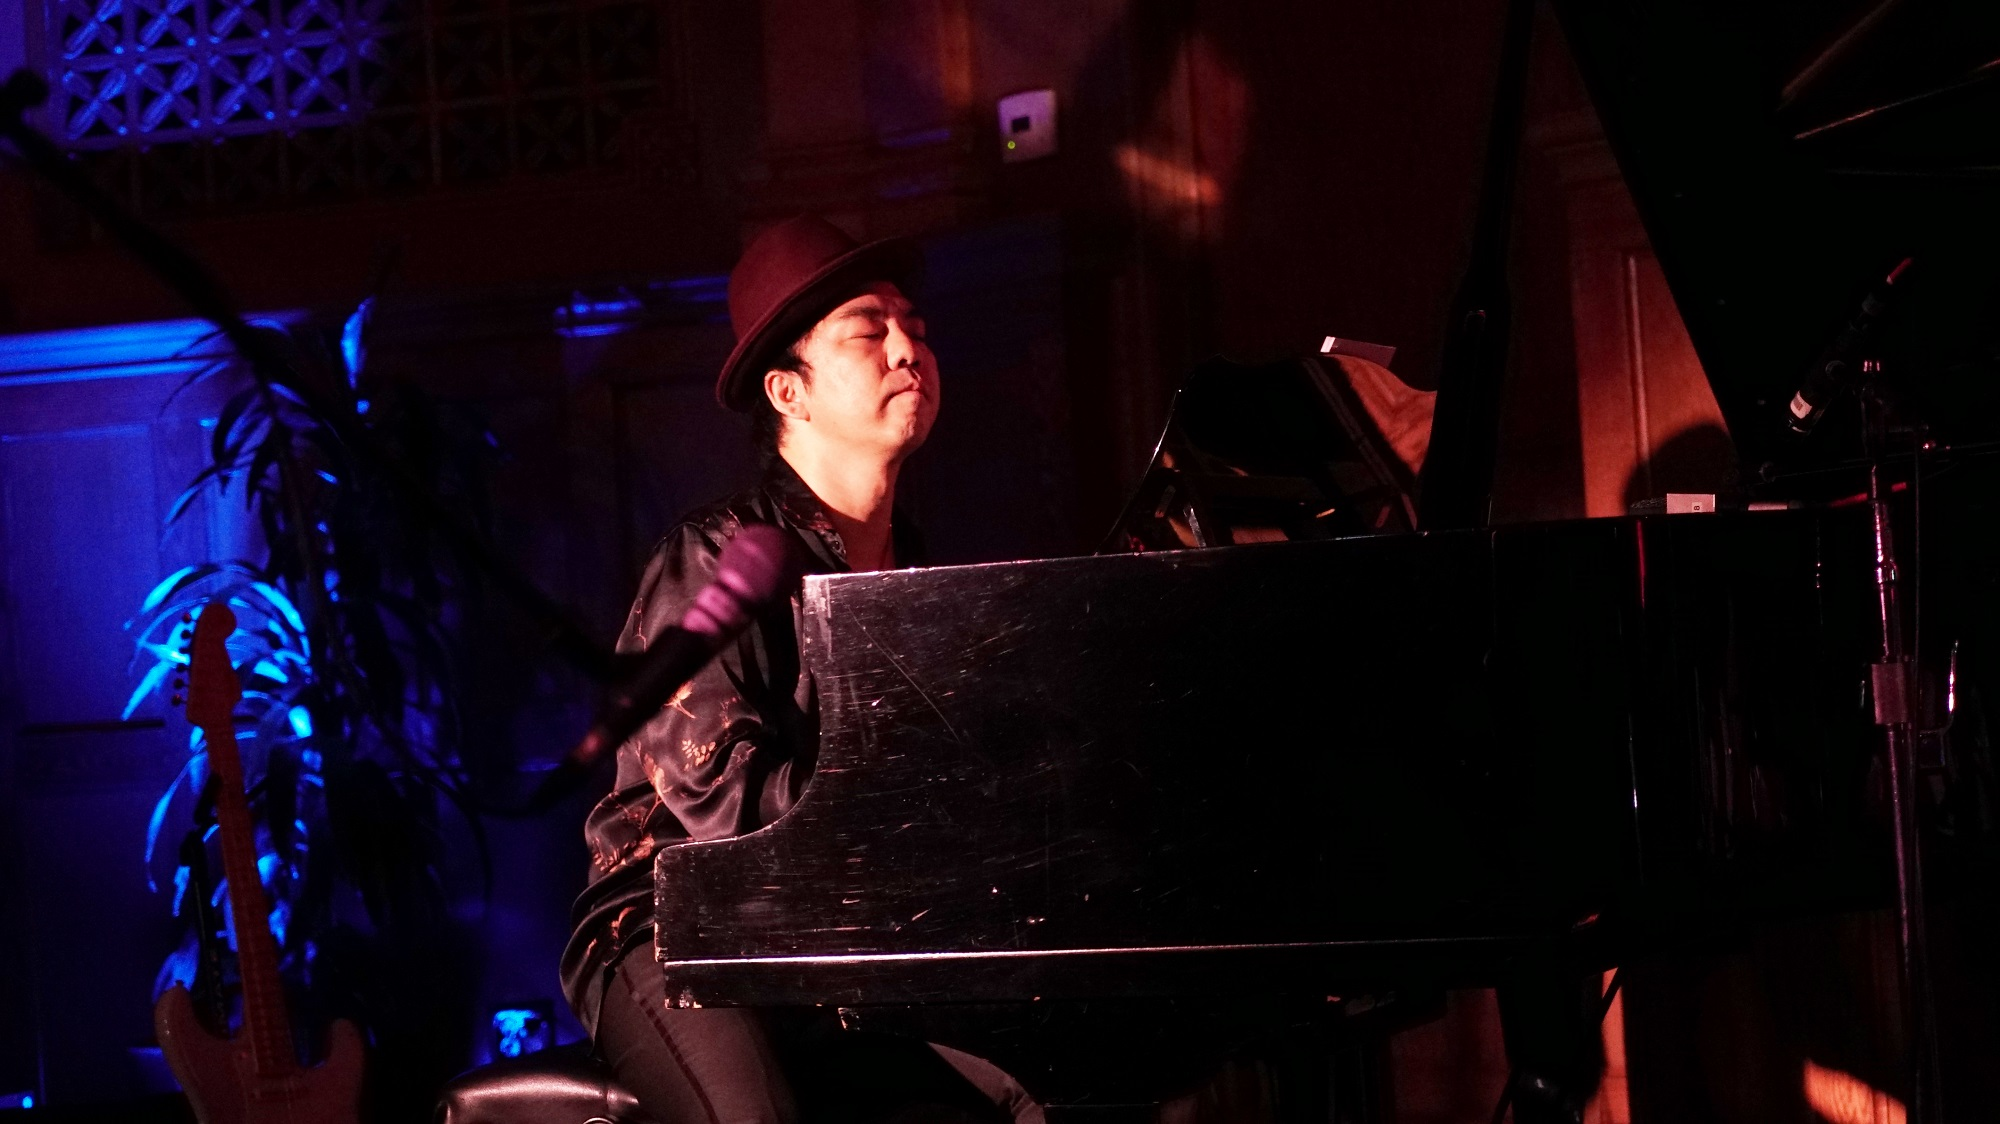 Grammy Nominee Multi-Instrumentalist, MASA TAKUMI, Hosts First Live Music Event in U.S.